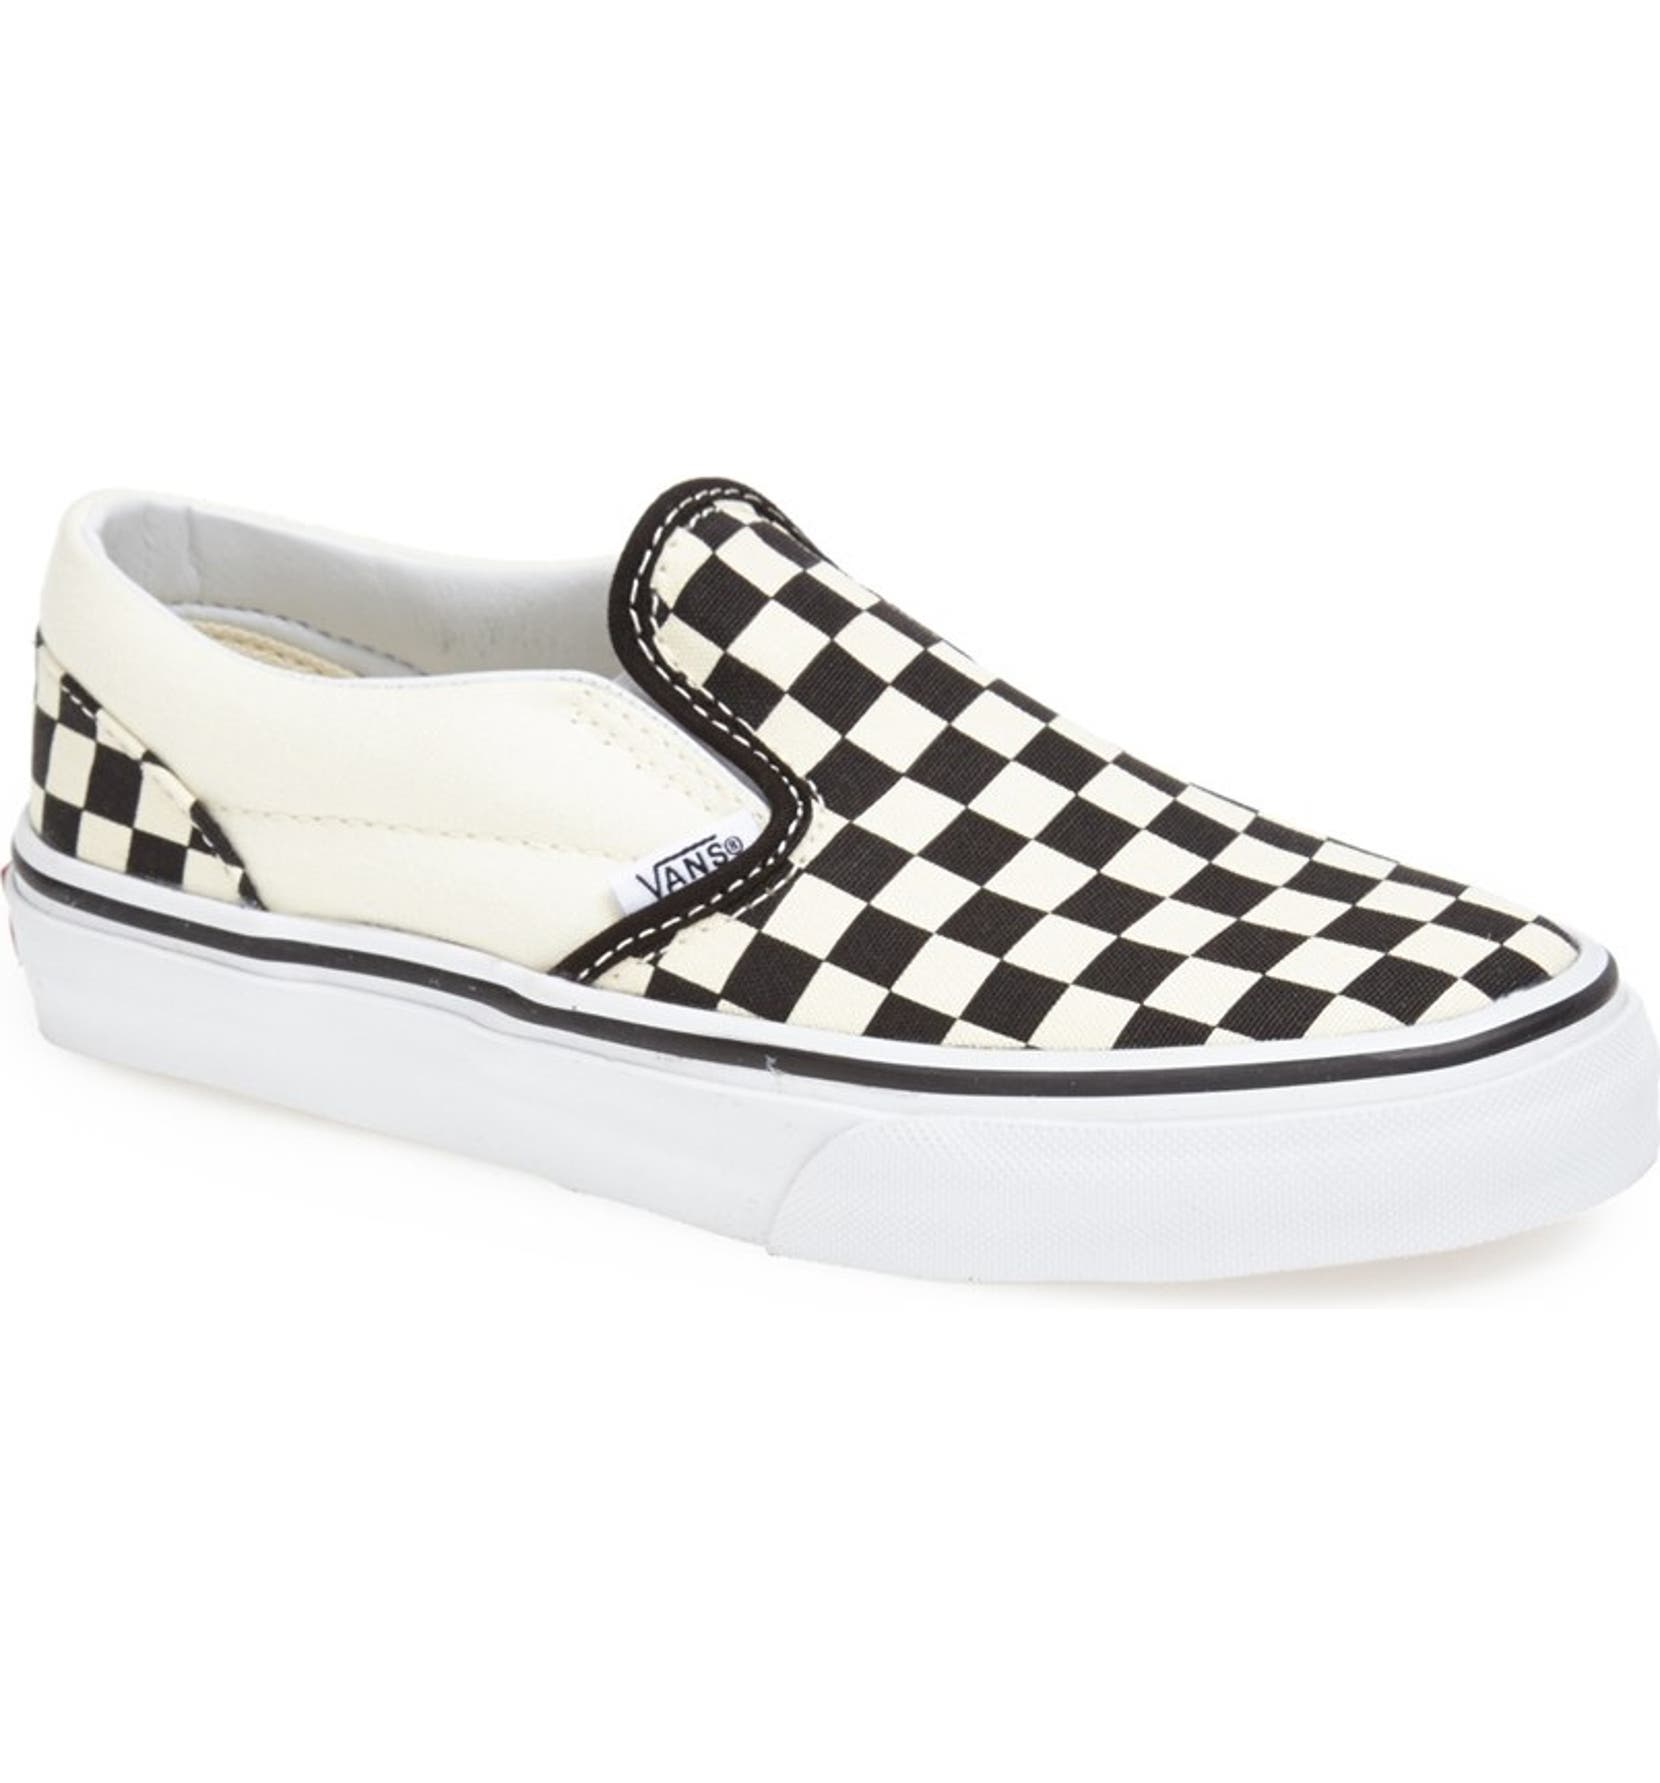 16e6f43c1f52 Vans 'Classic - Checkerboard' Slip-On (Baby, Walker, Toddler, Little Kid &  Big Kid) | Nordstrom